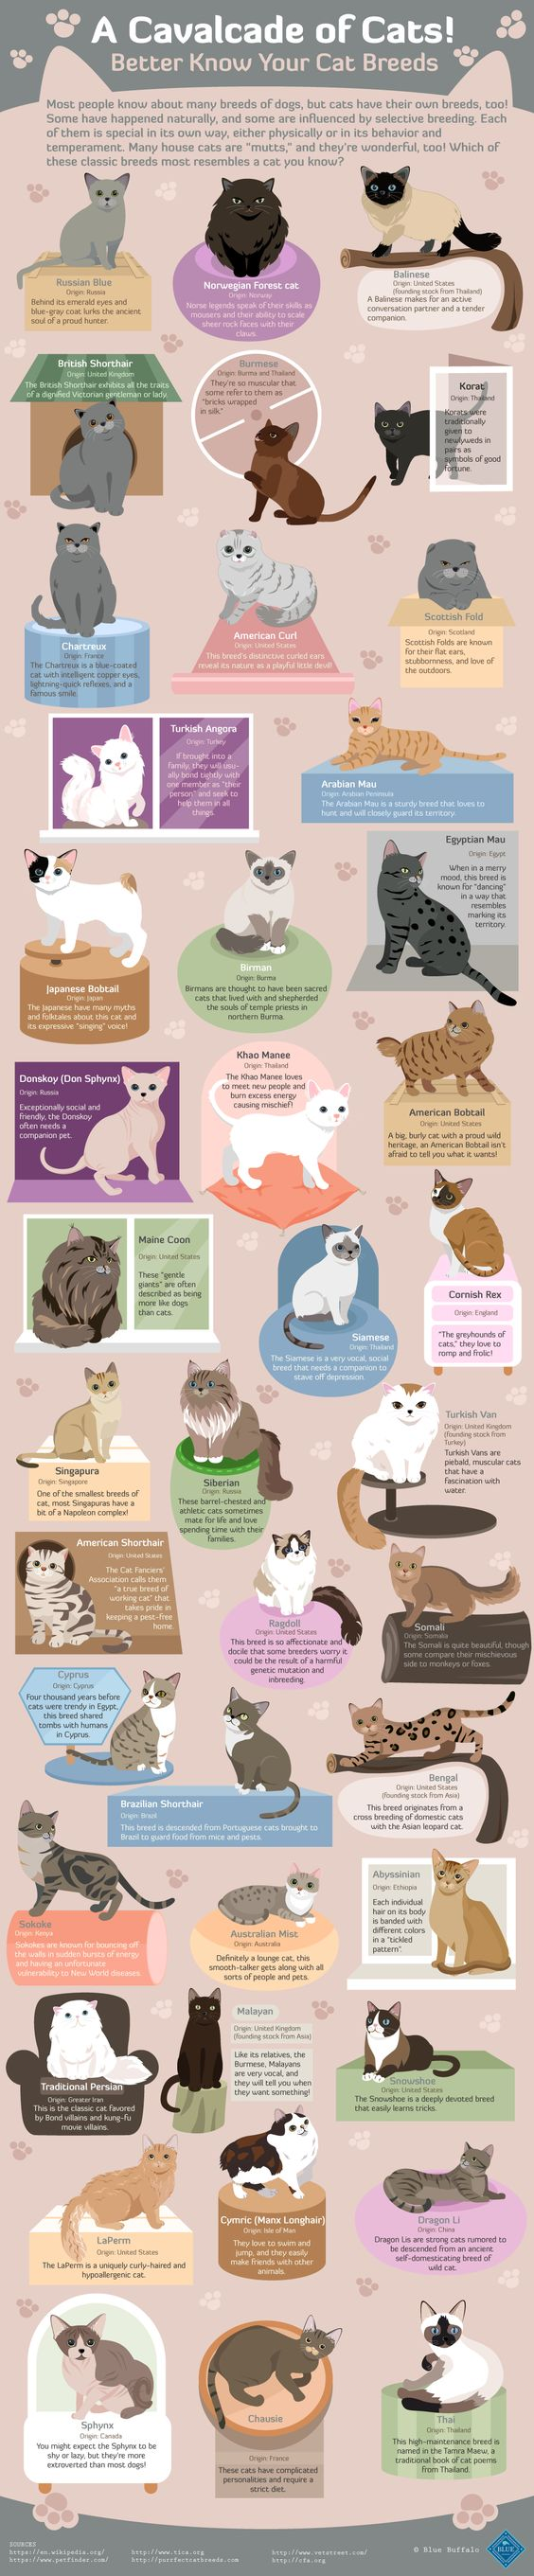 A Cavalcade of Cats! #Infographic #Animal #Cats #Pets: